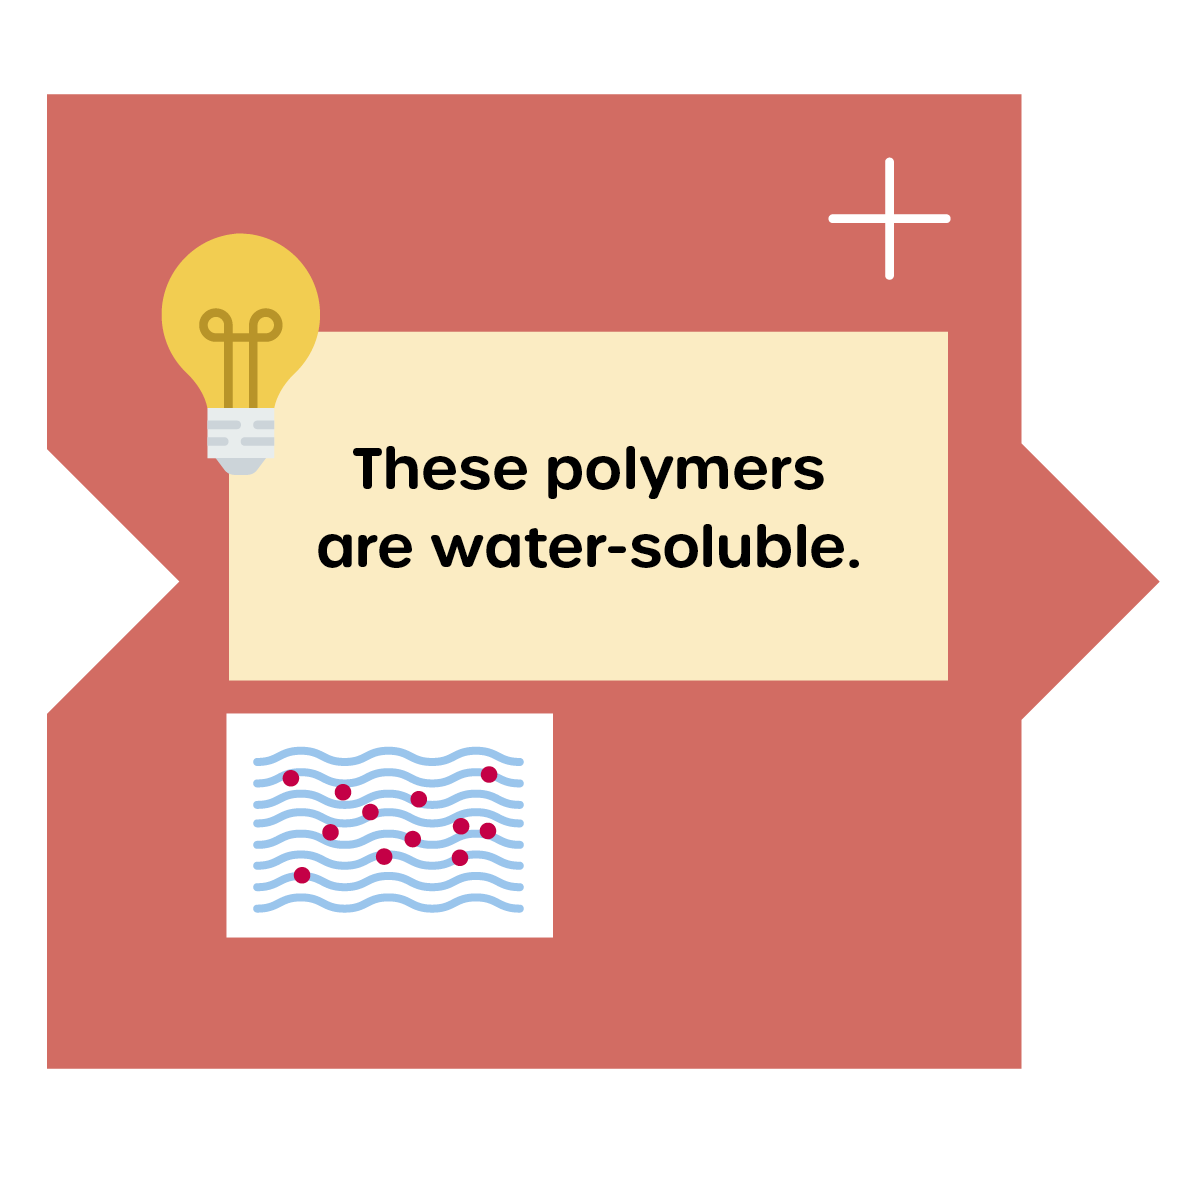 These polymers are water-soluble.